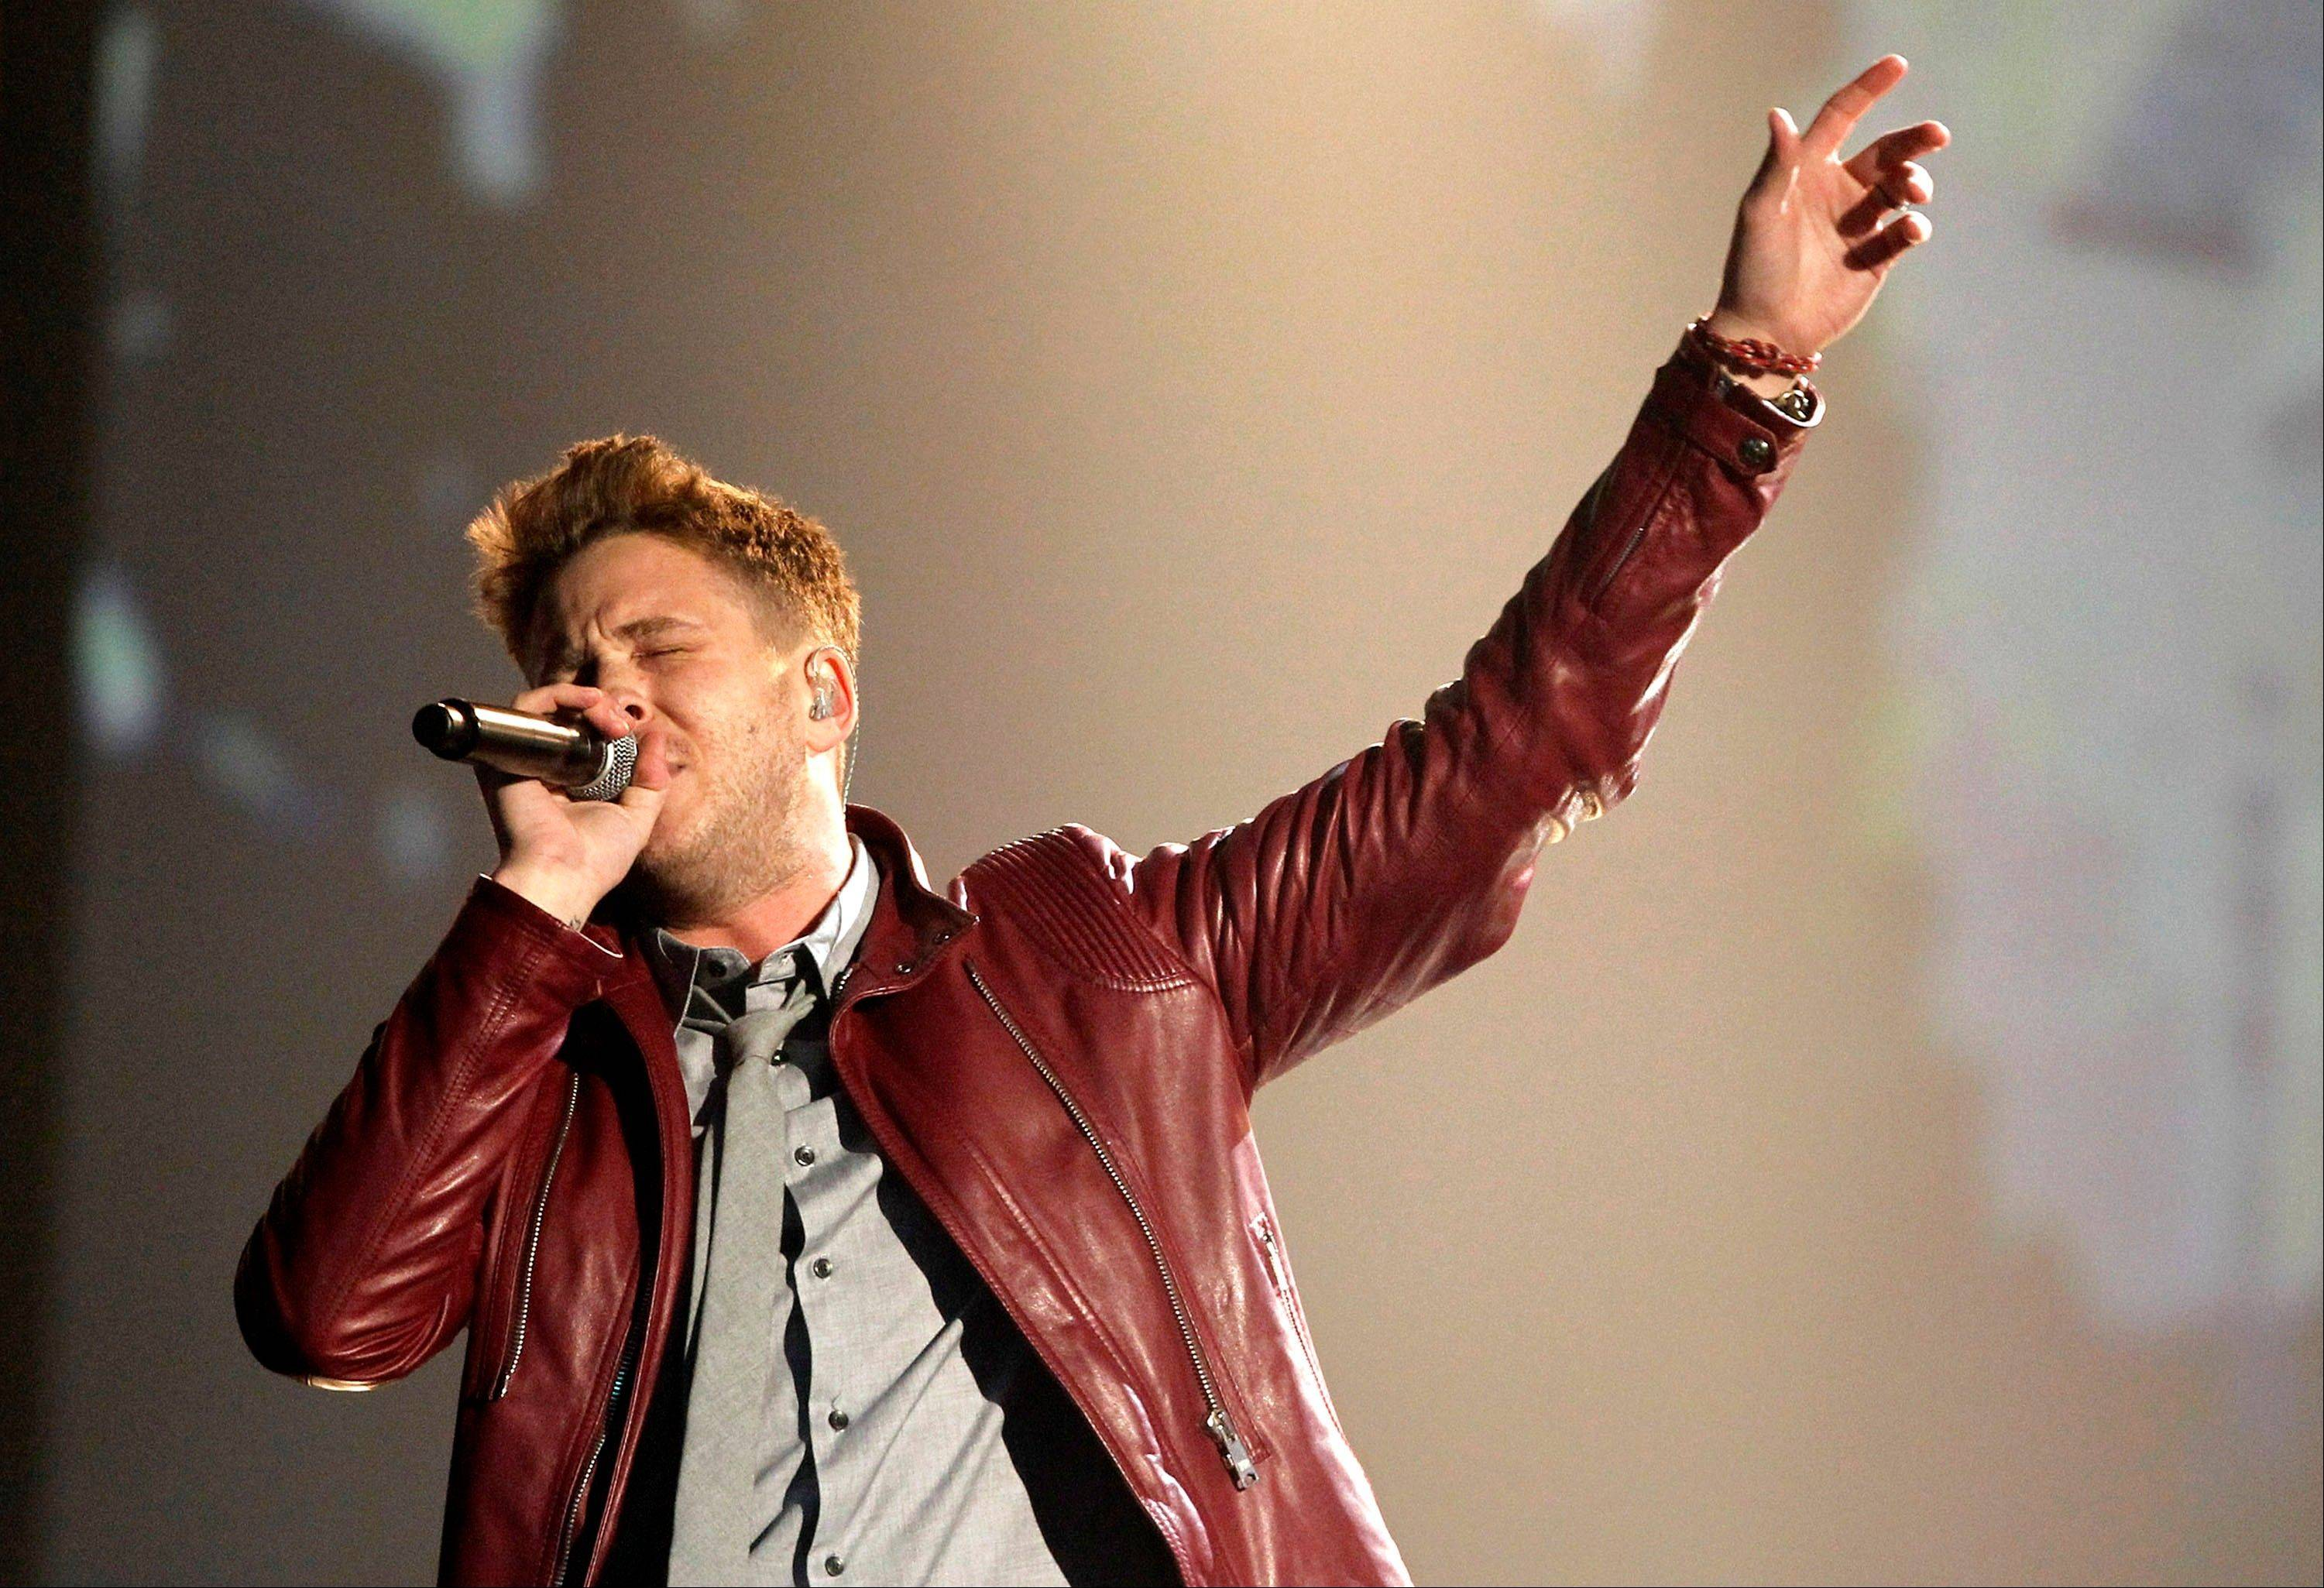 Ryan Tedder and the band OneRepublic perform at the 39th Annual American Music Awards on Sunday, Nov. 20, 2011 in Los Angeles.